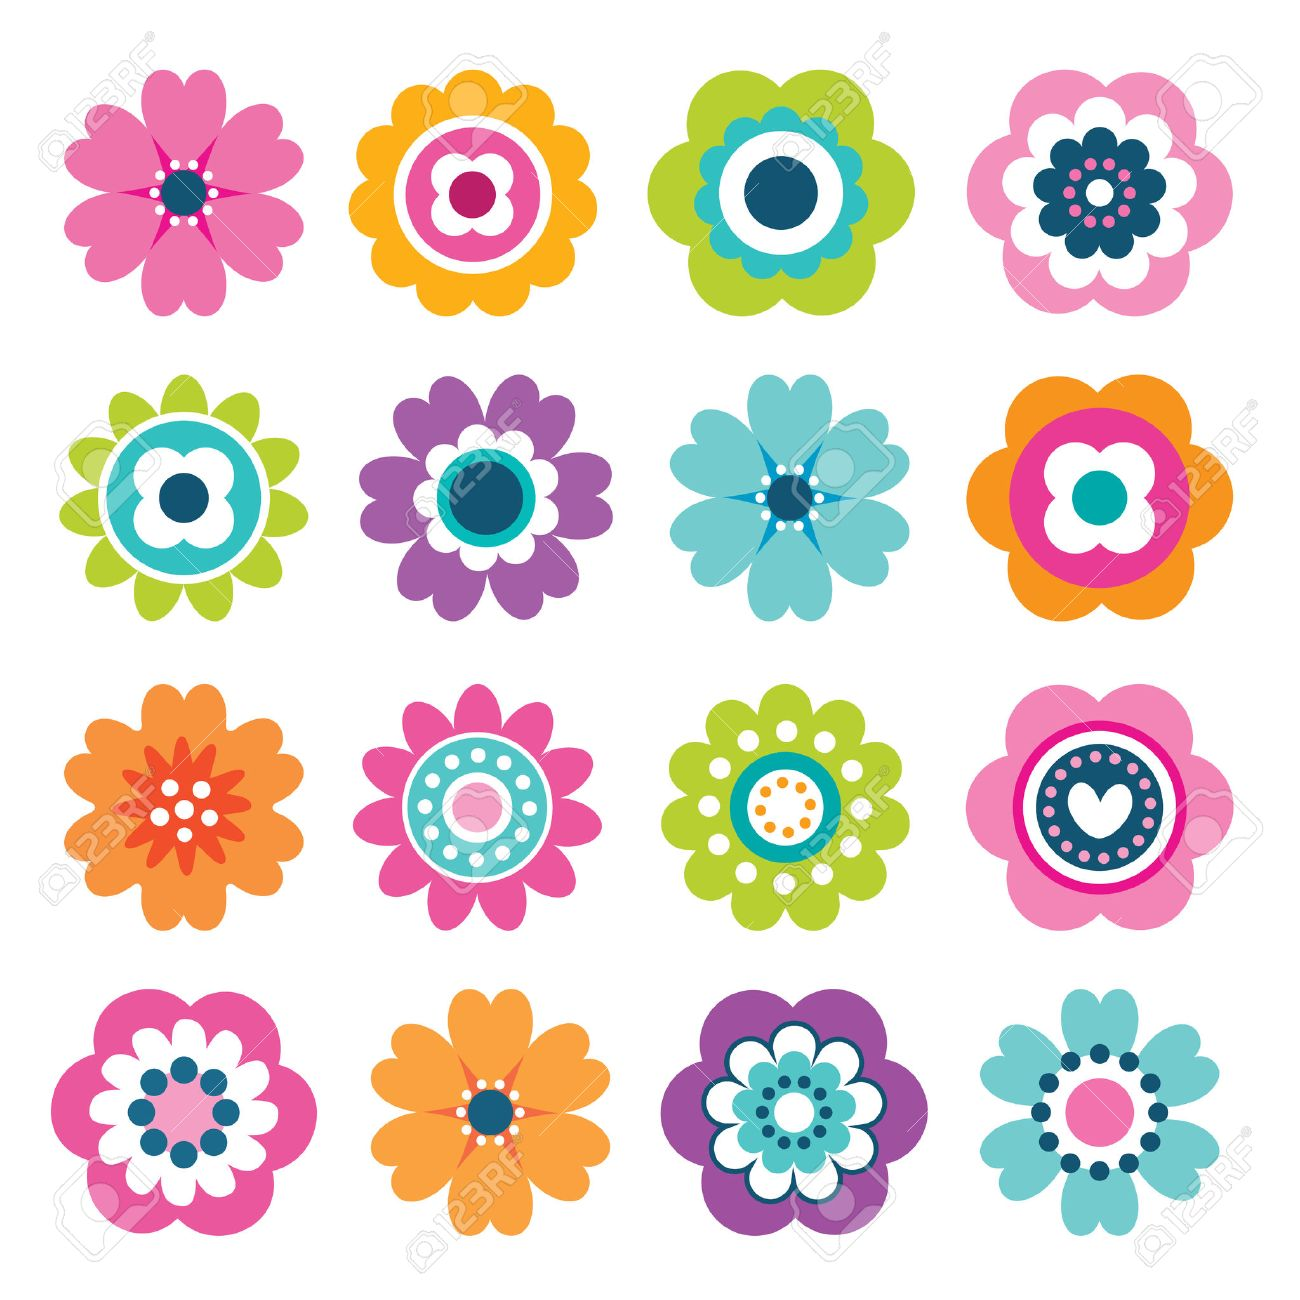 Flower garden cartoon - Flower Garden Cartoon Set Of Flat Flower Icons In Silhouette Isolated On White Cute